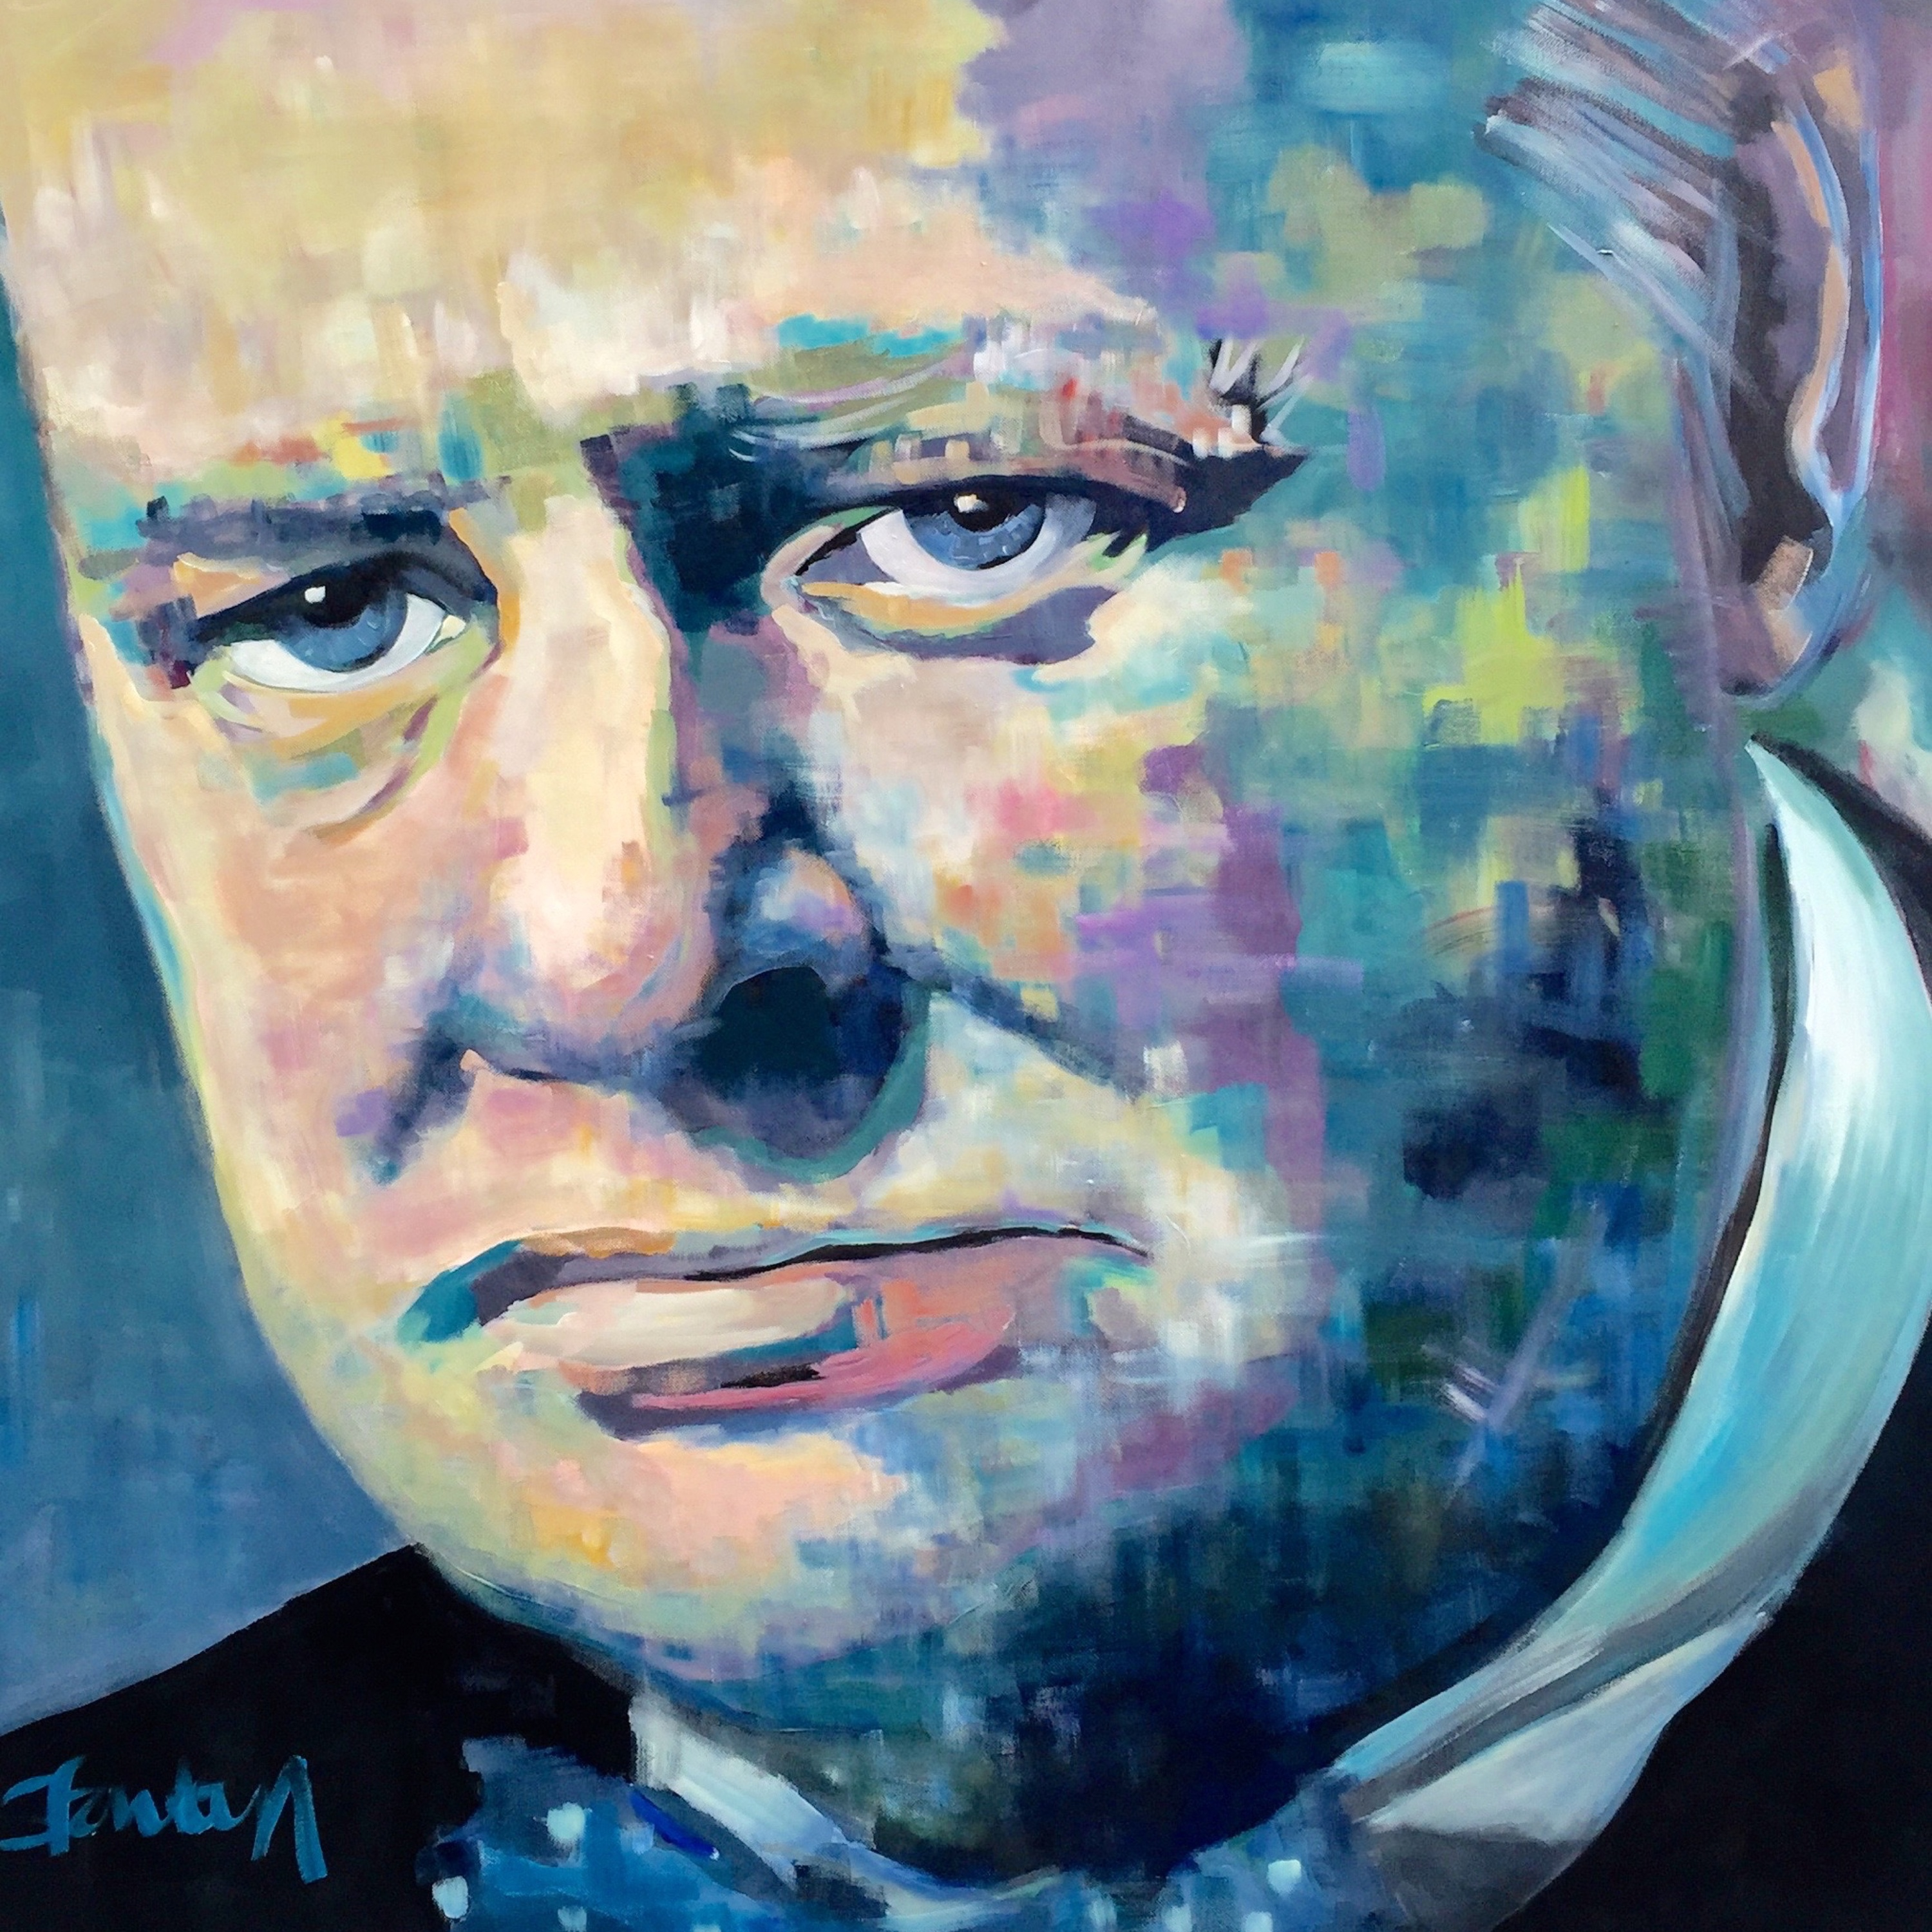 Winston churchill by steph fonteyn sdxldp